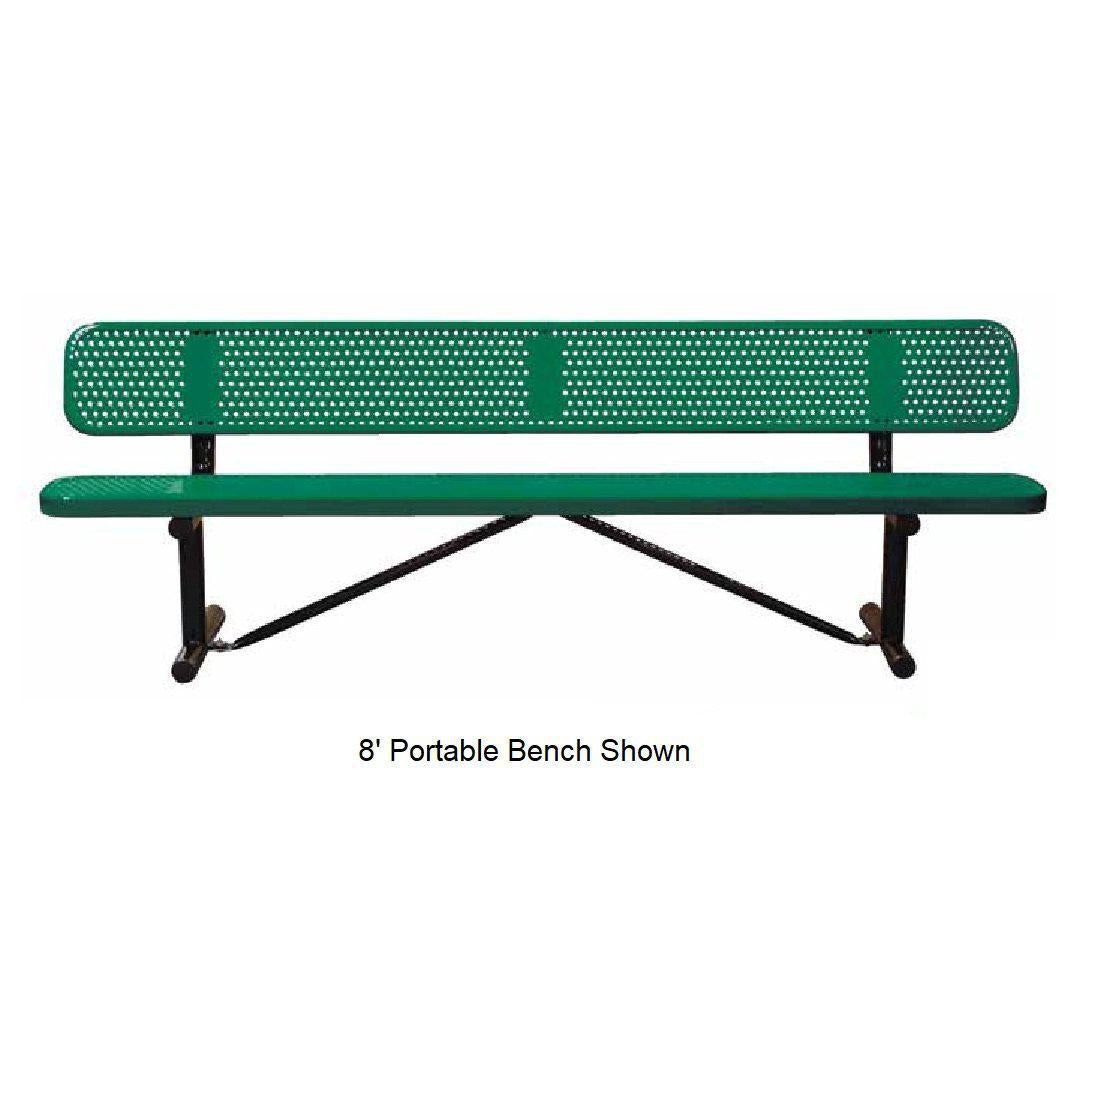 10' Standard Perforated Bench With Back, Surface Mount